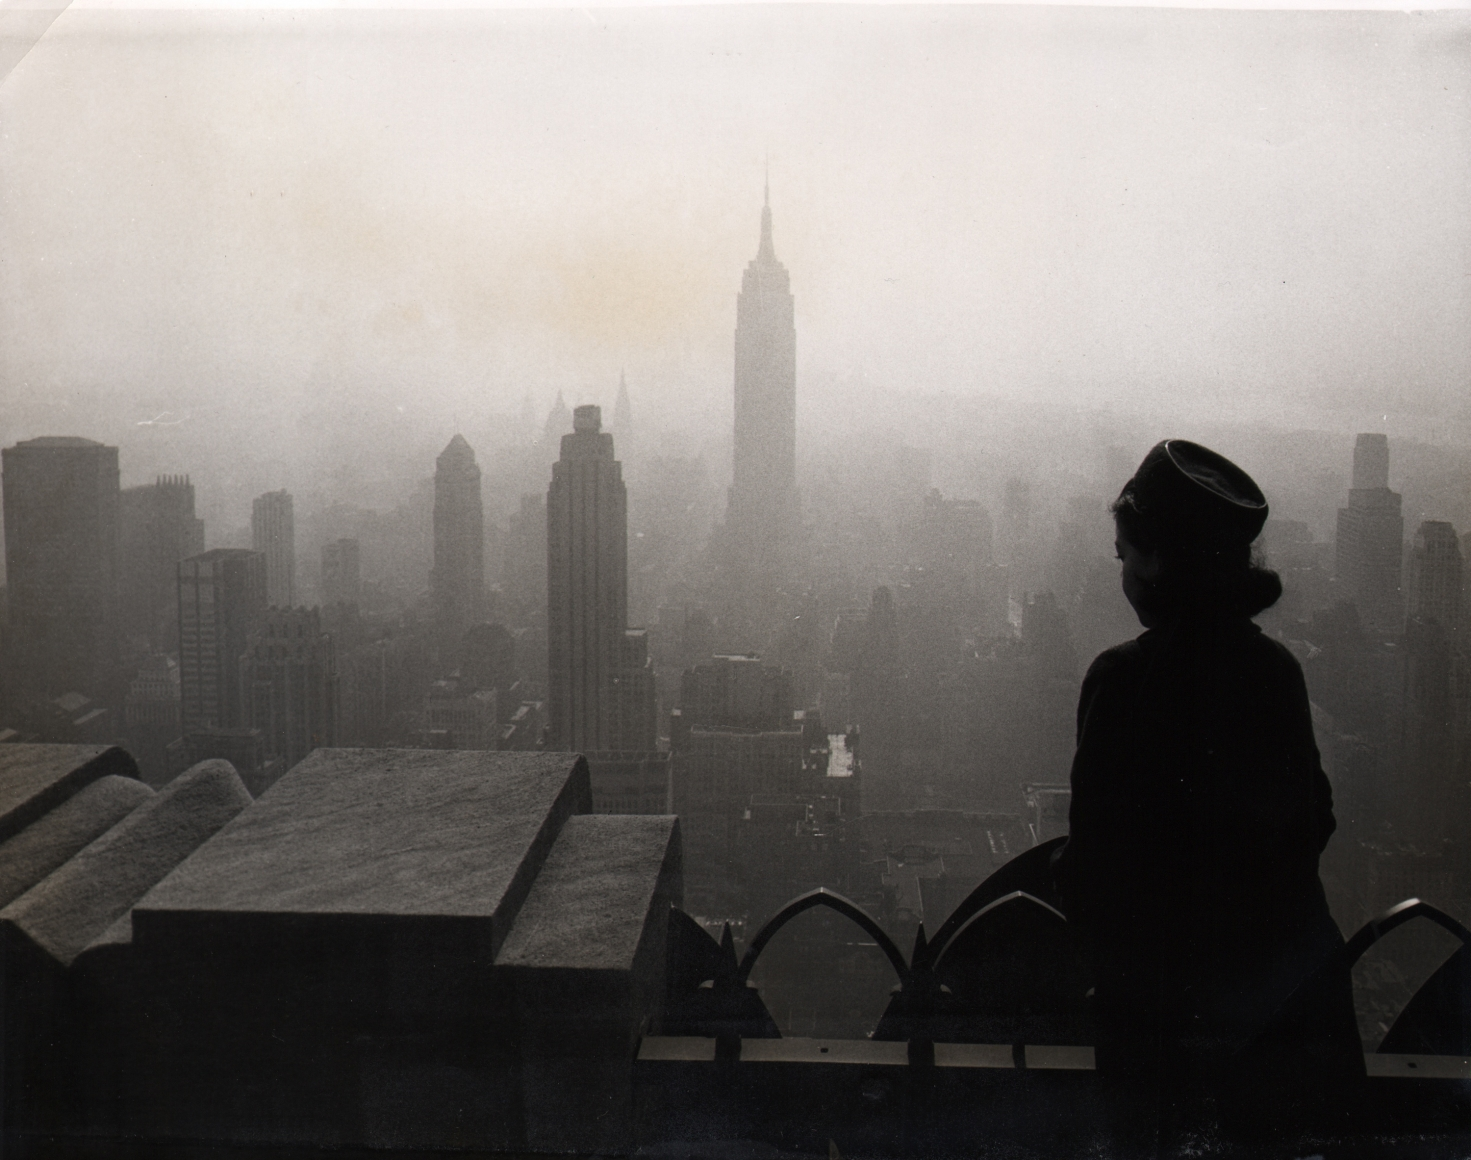 17. UPI Photo, Smog-Bound City, 1965. A silhouetted woman stands on a balcony, looking out towards a foggy skyline that includes the Empire State Building at the center.